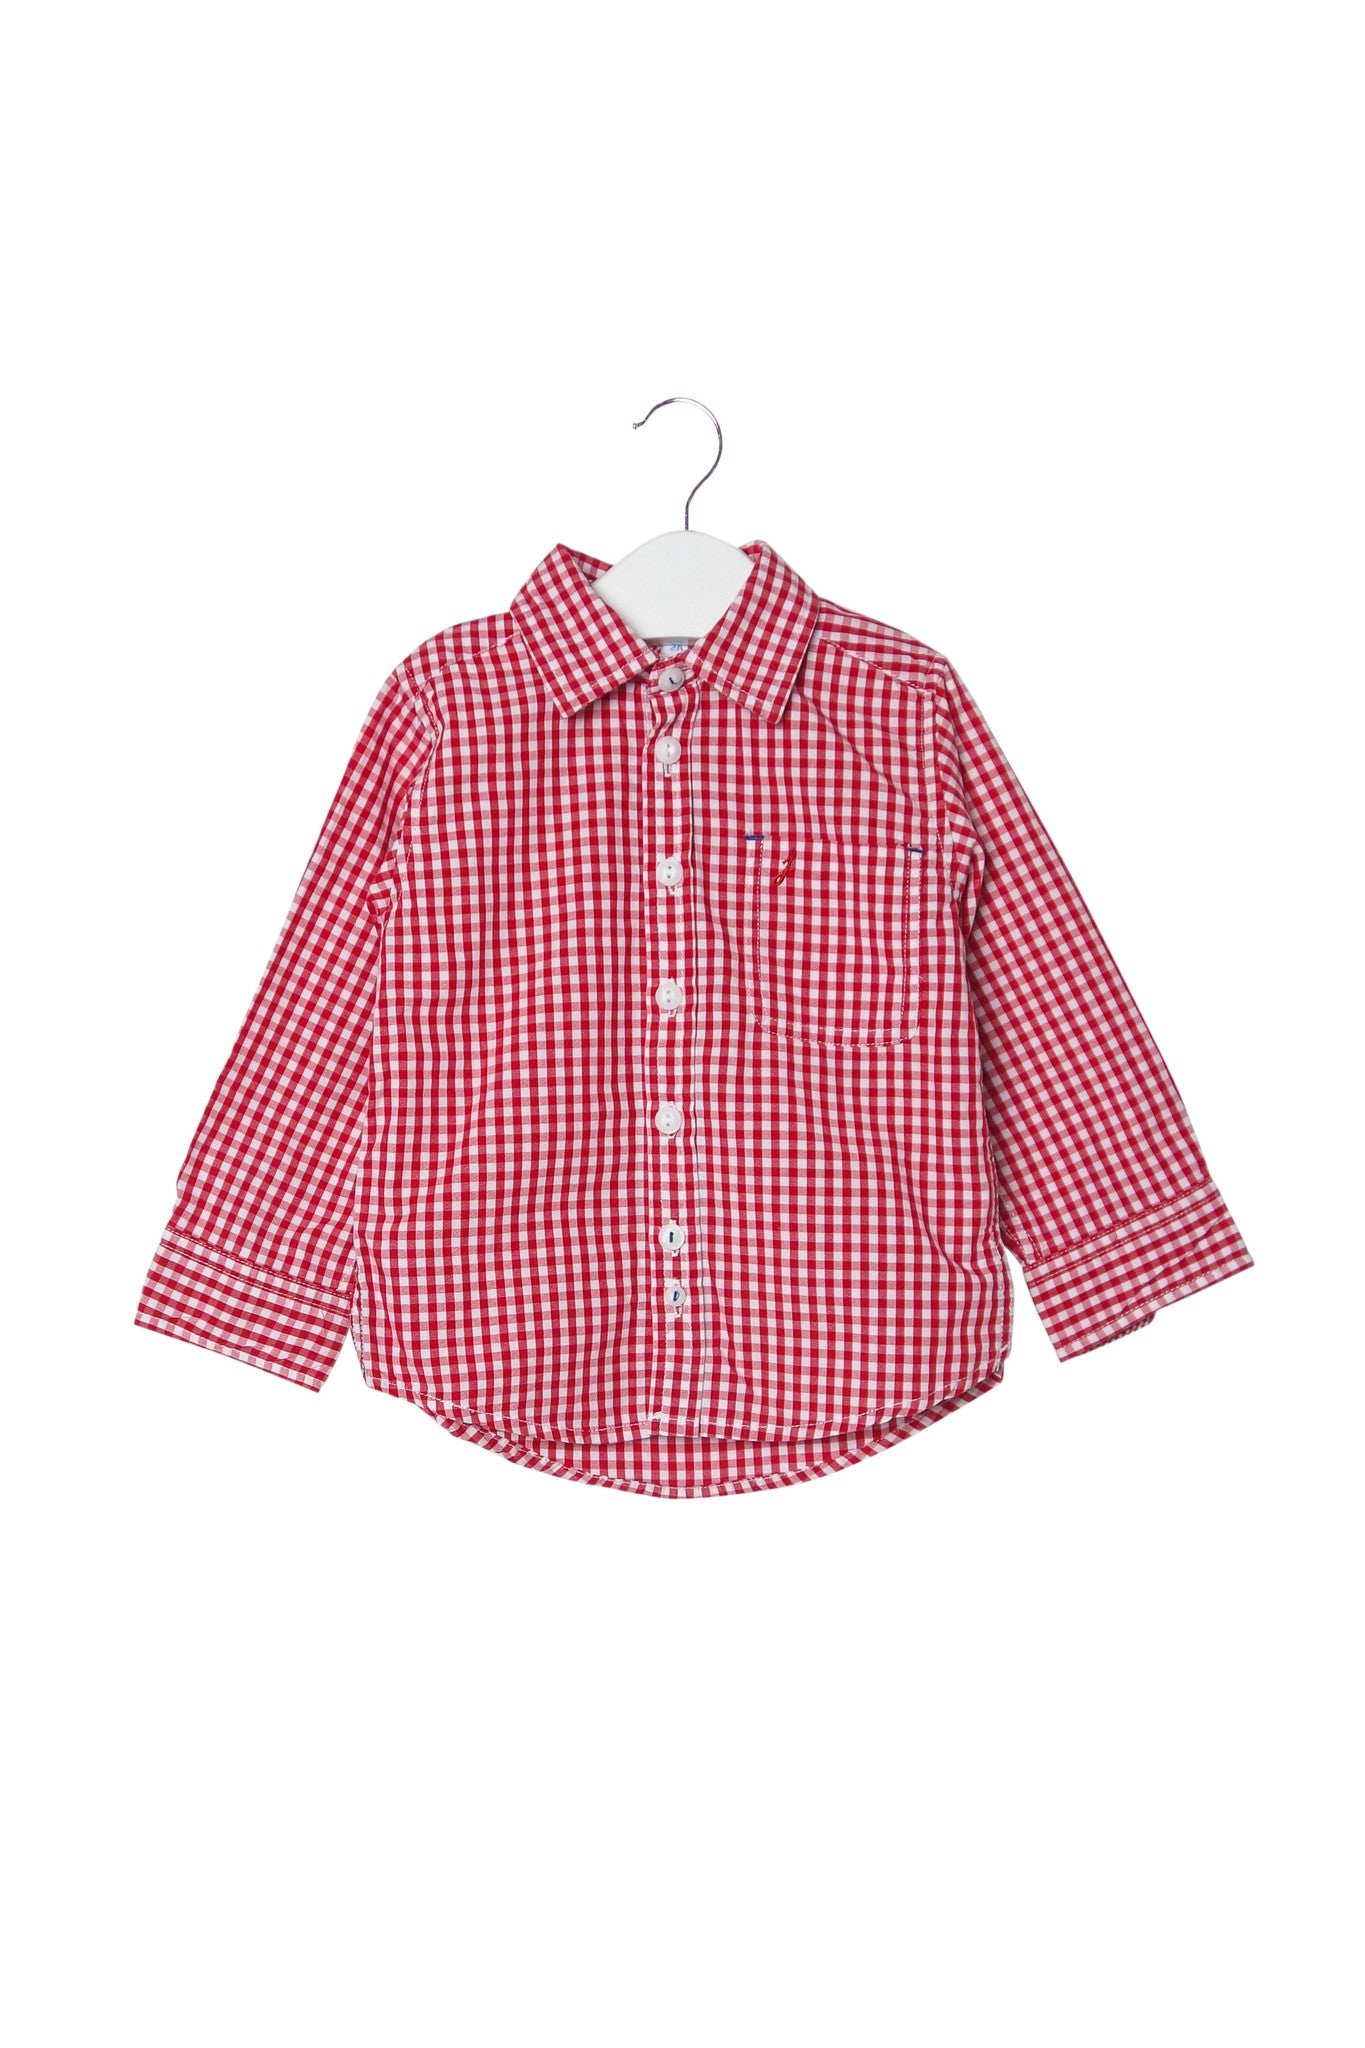 10002670 Jacadi Kids~Shirt 2T at Retykle